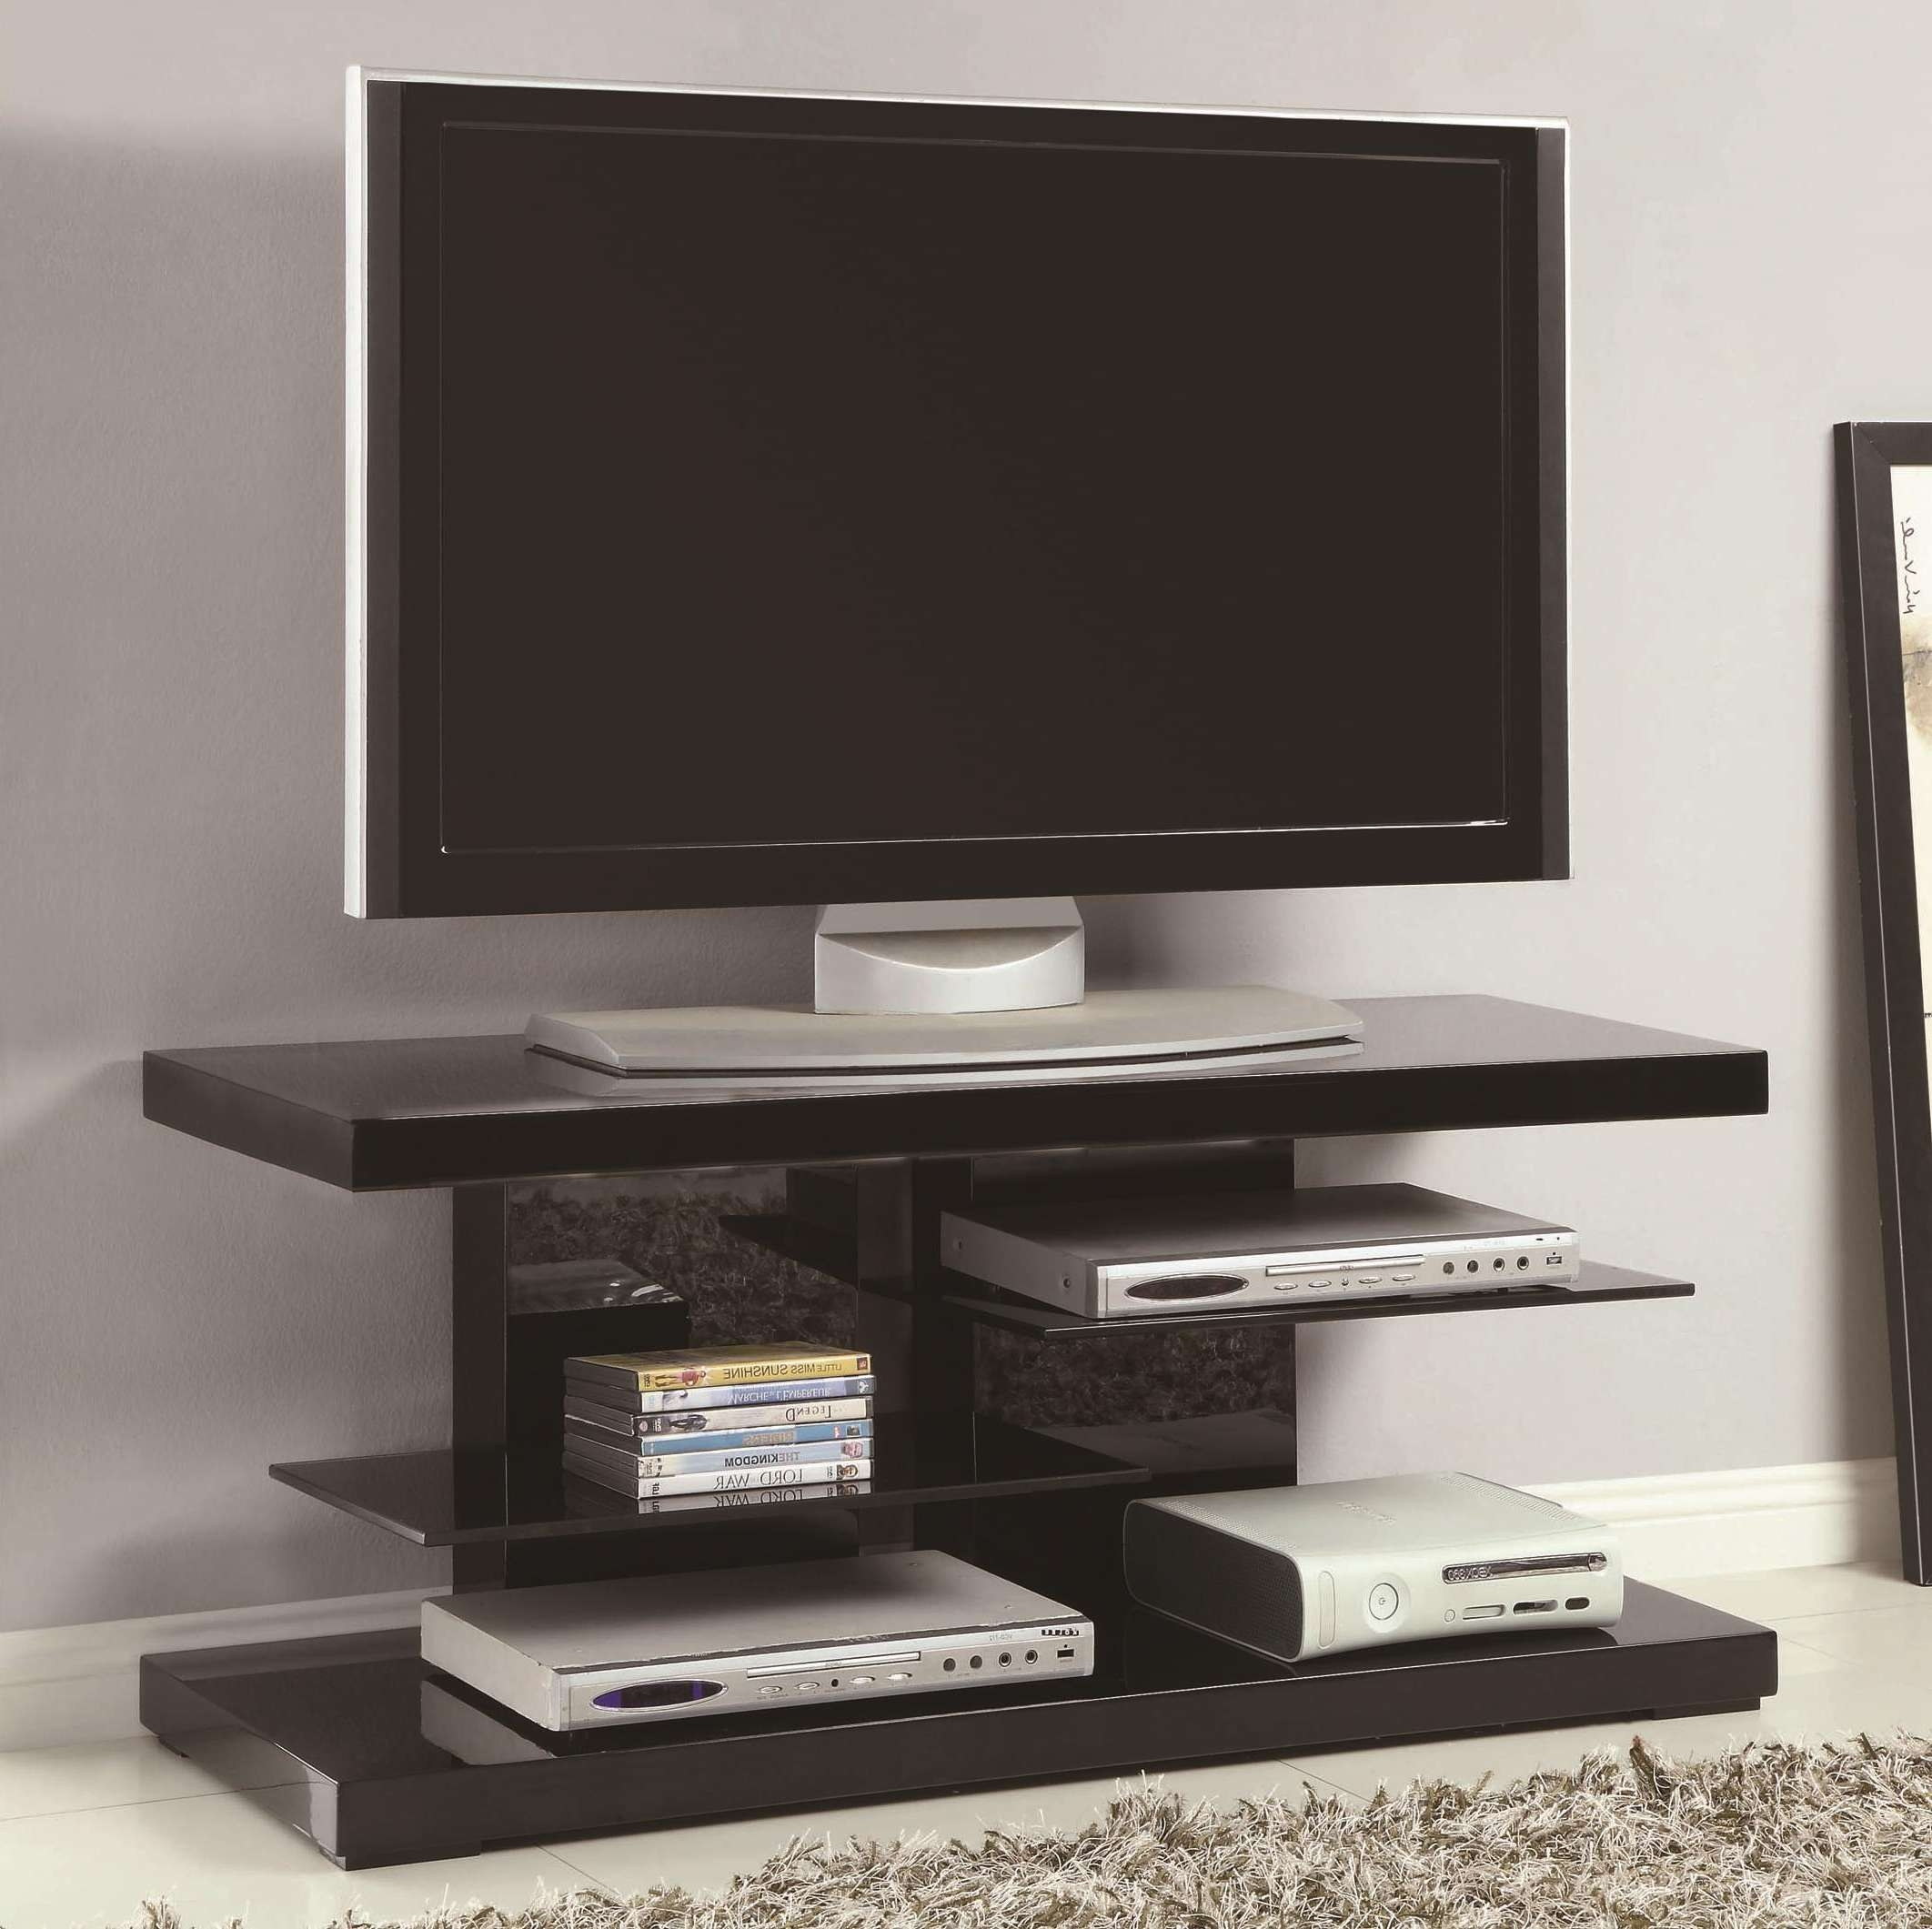 Best Contemporary Tv Console For Flat Screens | All Contemporary Inside Contemporary Tv Stands For Flat Screens (View 2 of 15)